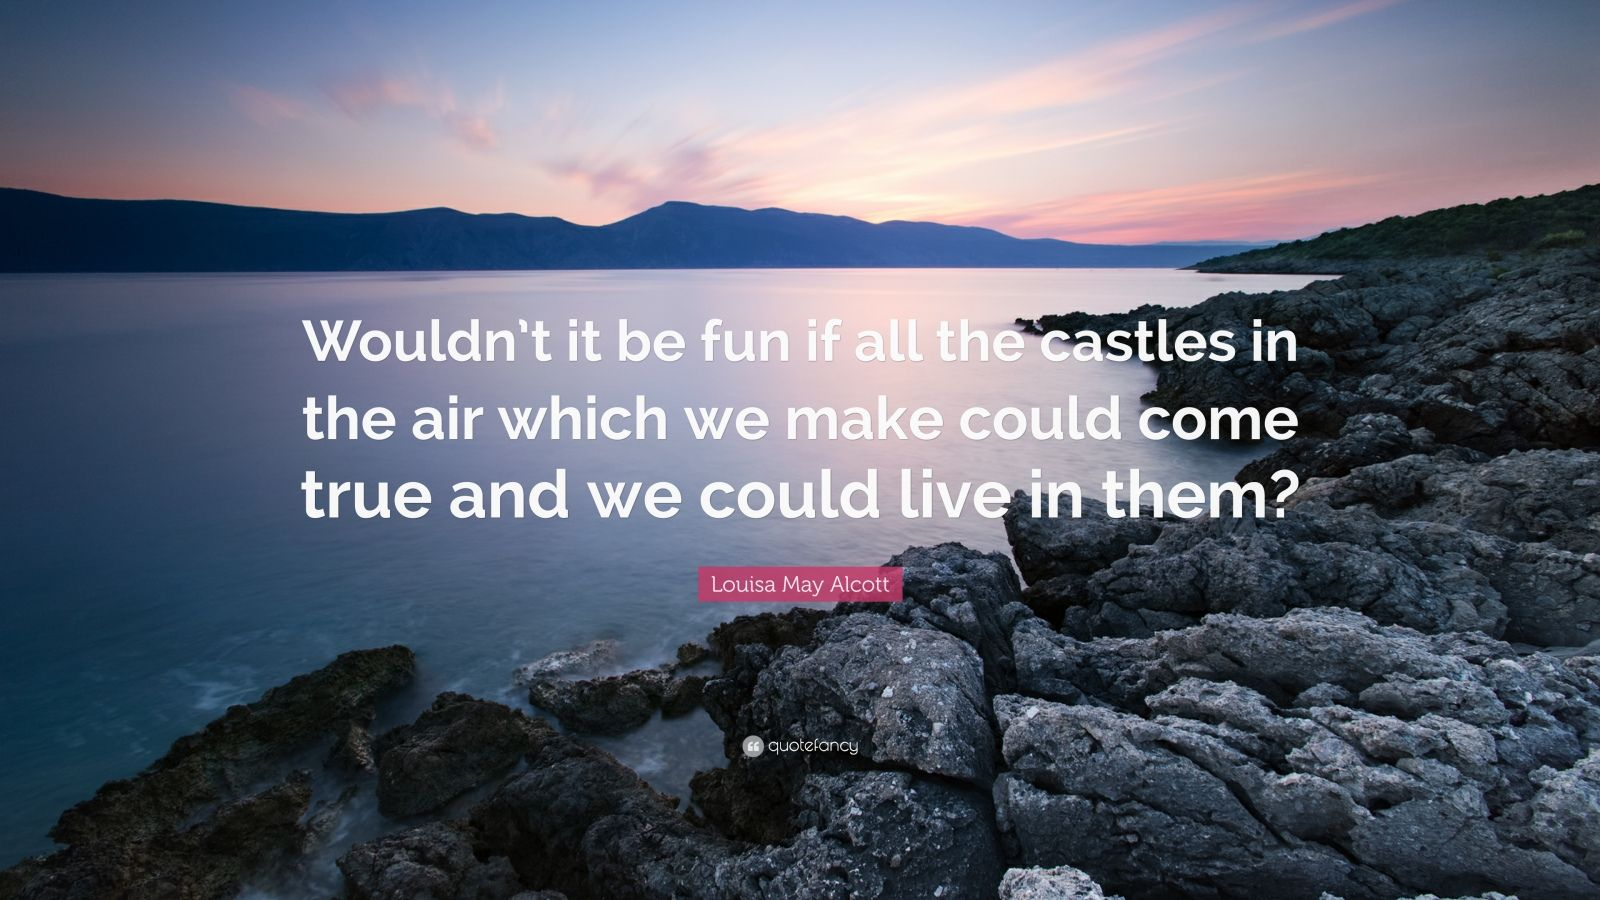 """Louisa May Alcott Quote: """"Wouldn't it be fun if all the castles in the air which we make could come true and we could live in them?"""""""